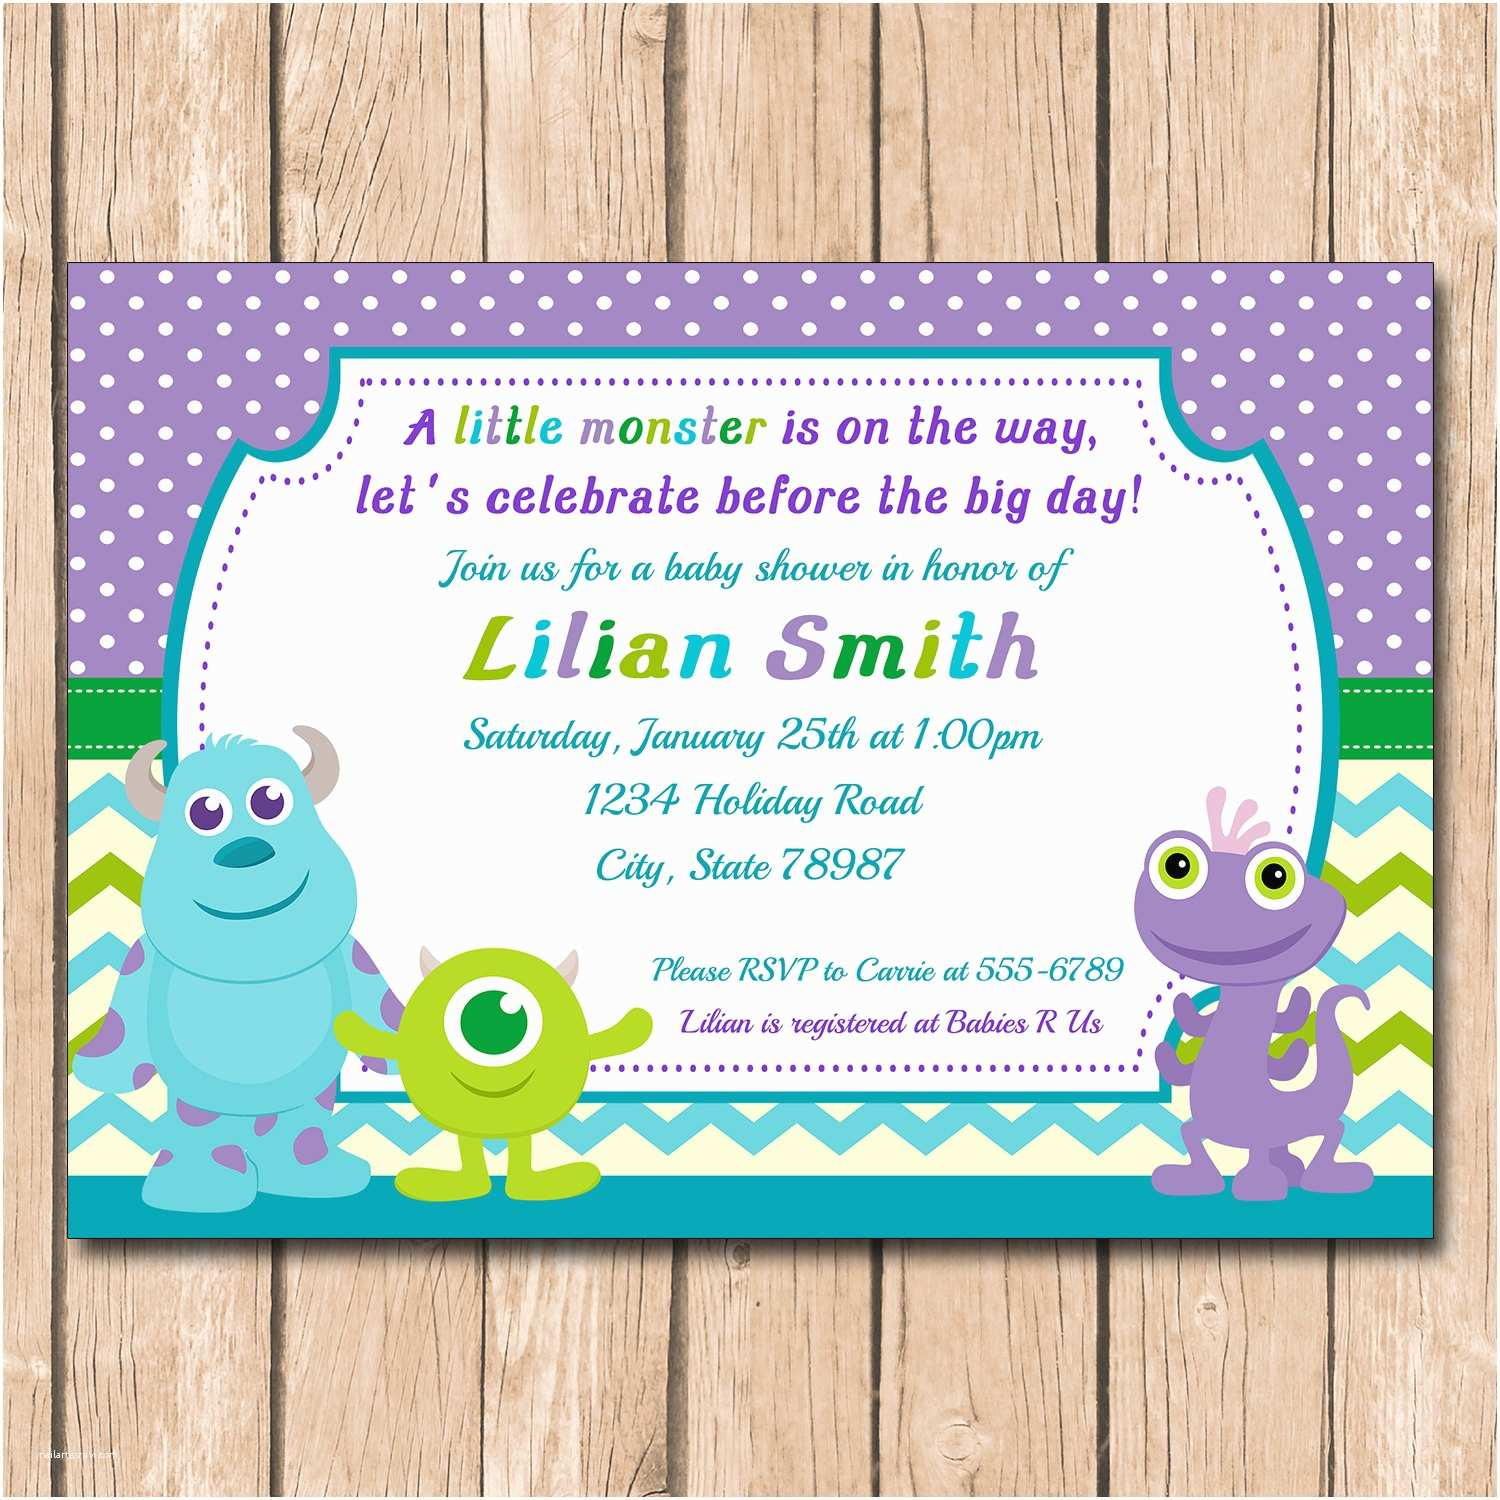 Monsters Inc Baby Shower Invitations Kitchen & Dining